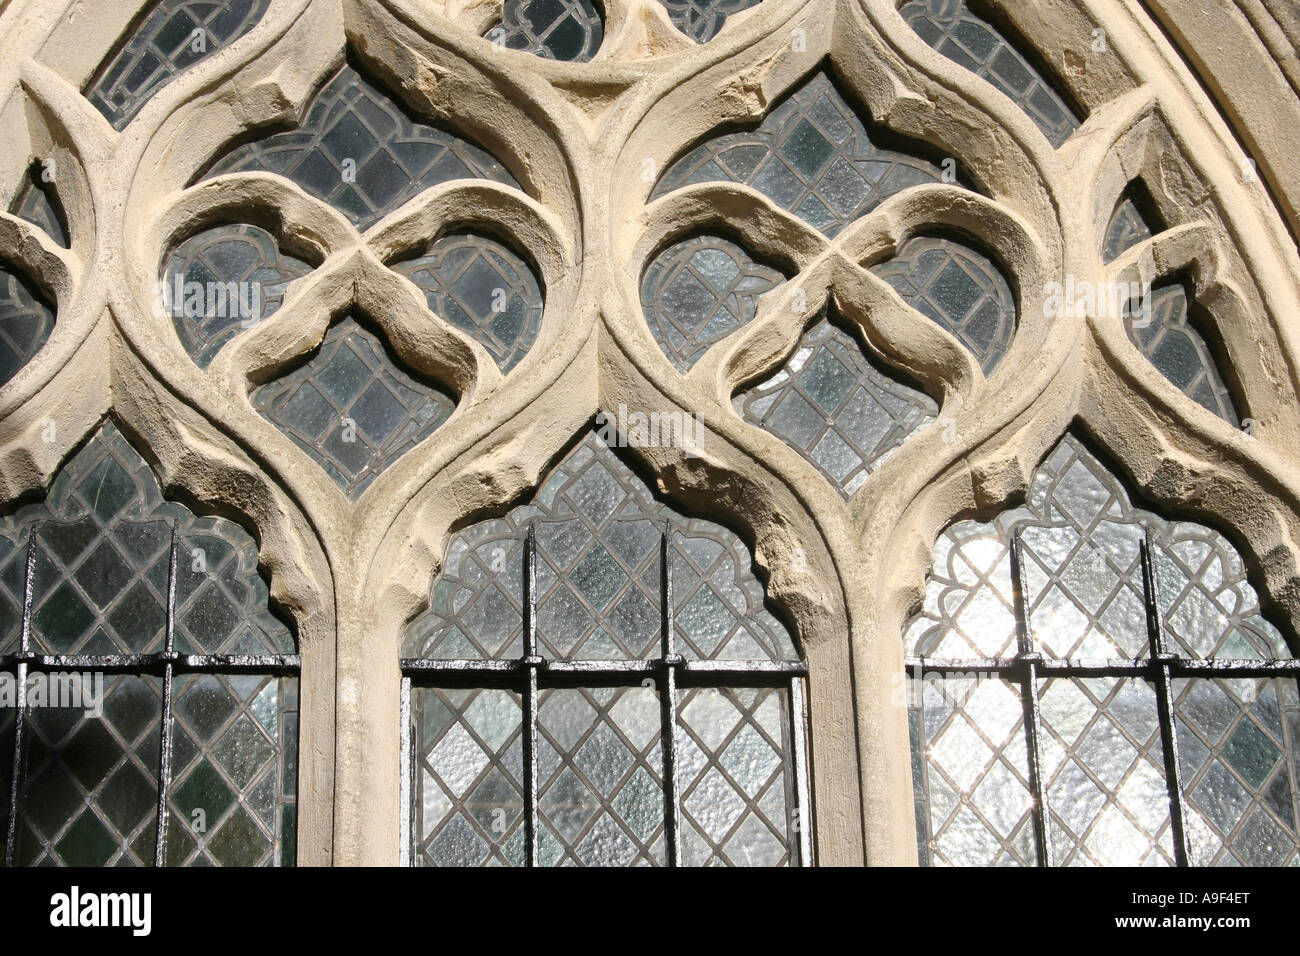 Church Window, St Mary's Church, Thame, Oxfordshire - Stock Image